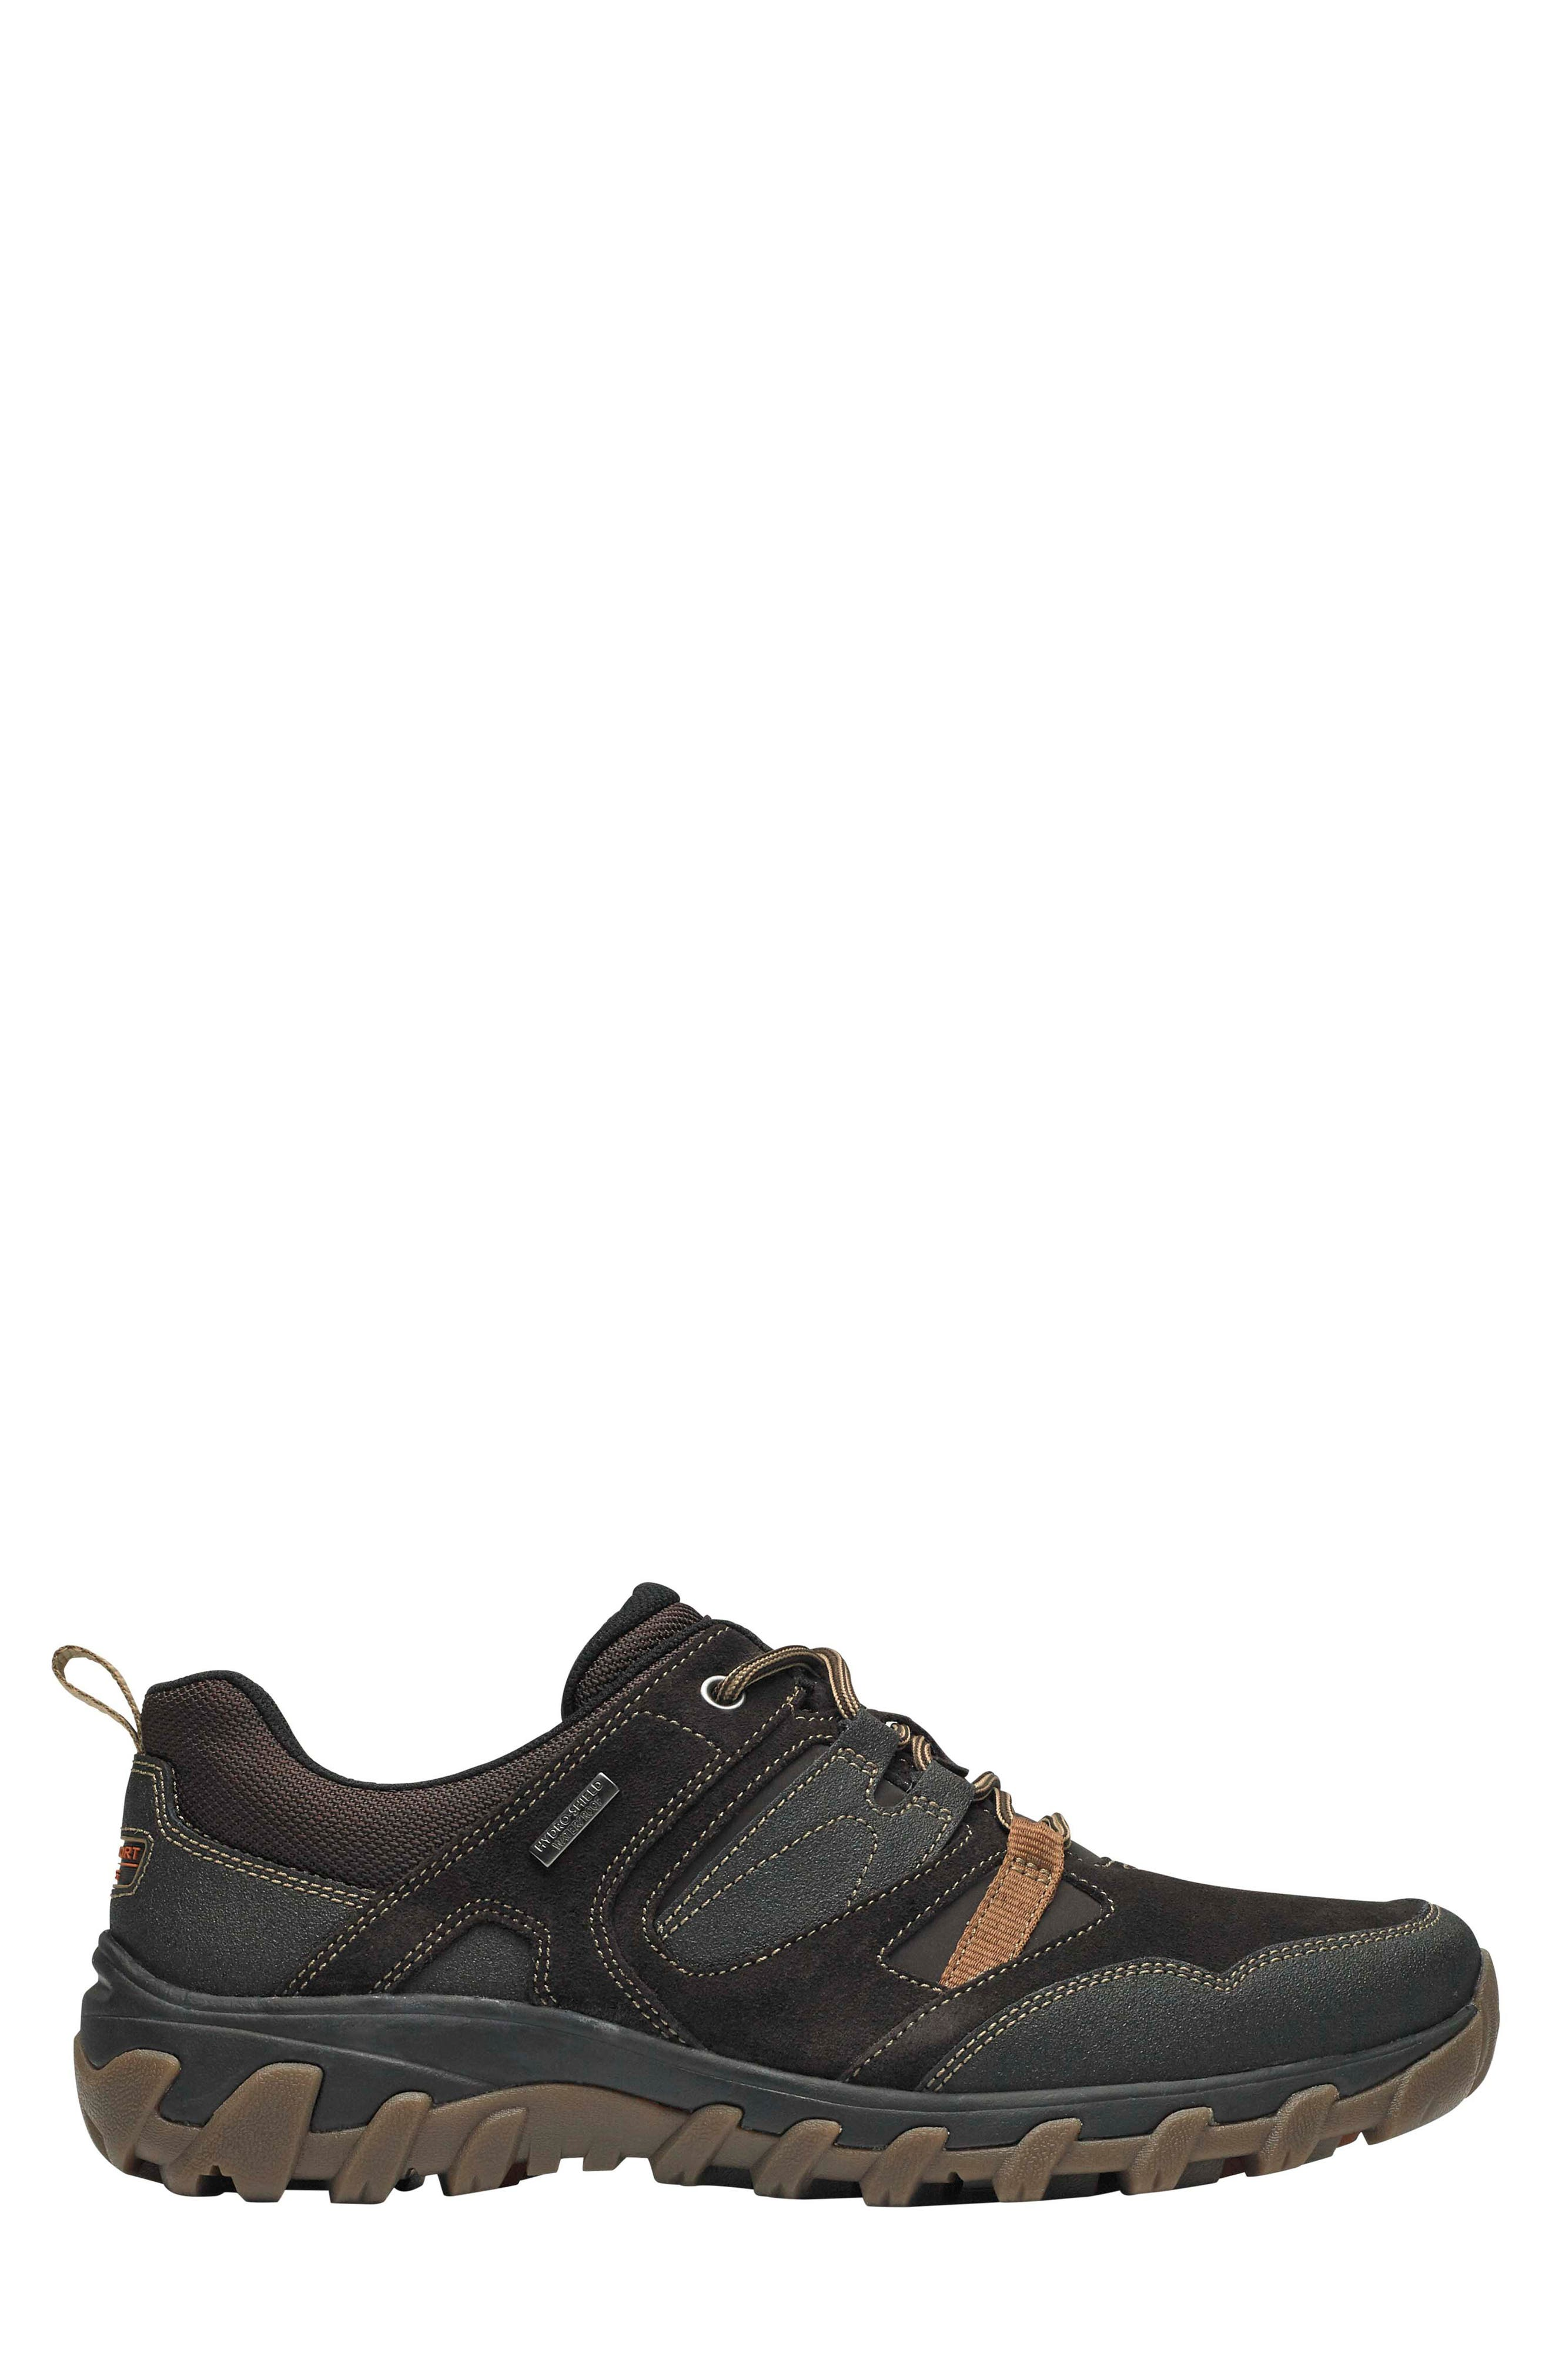 Cold Springs Plus Lace-Up Sneaker,                             Alternate thumbnail 3, color,                             DARK BROWN LEATHER